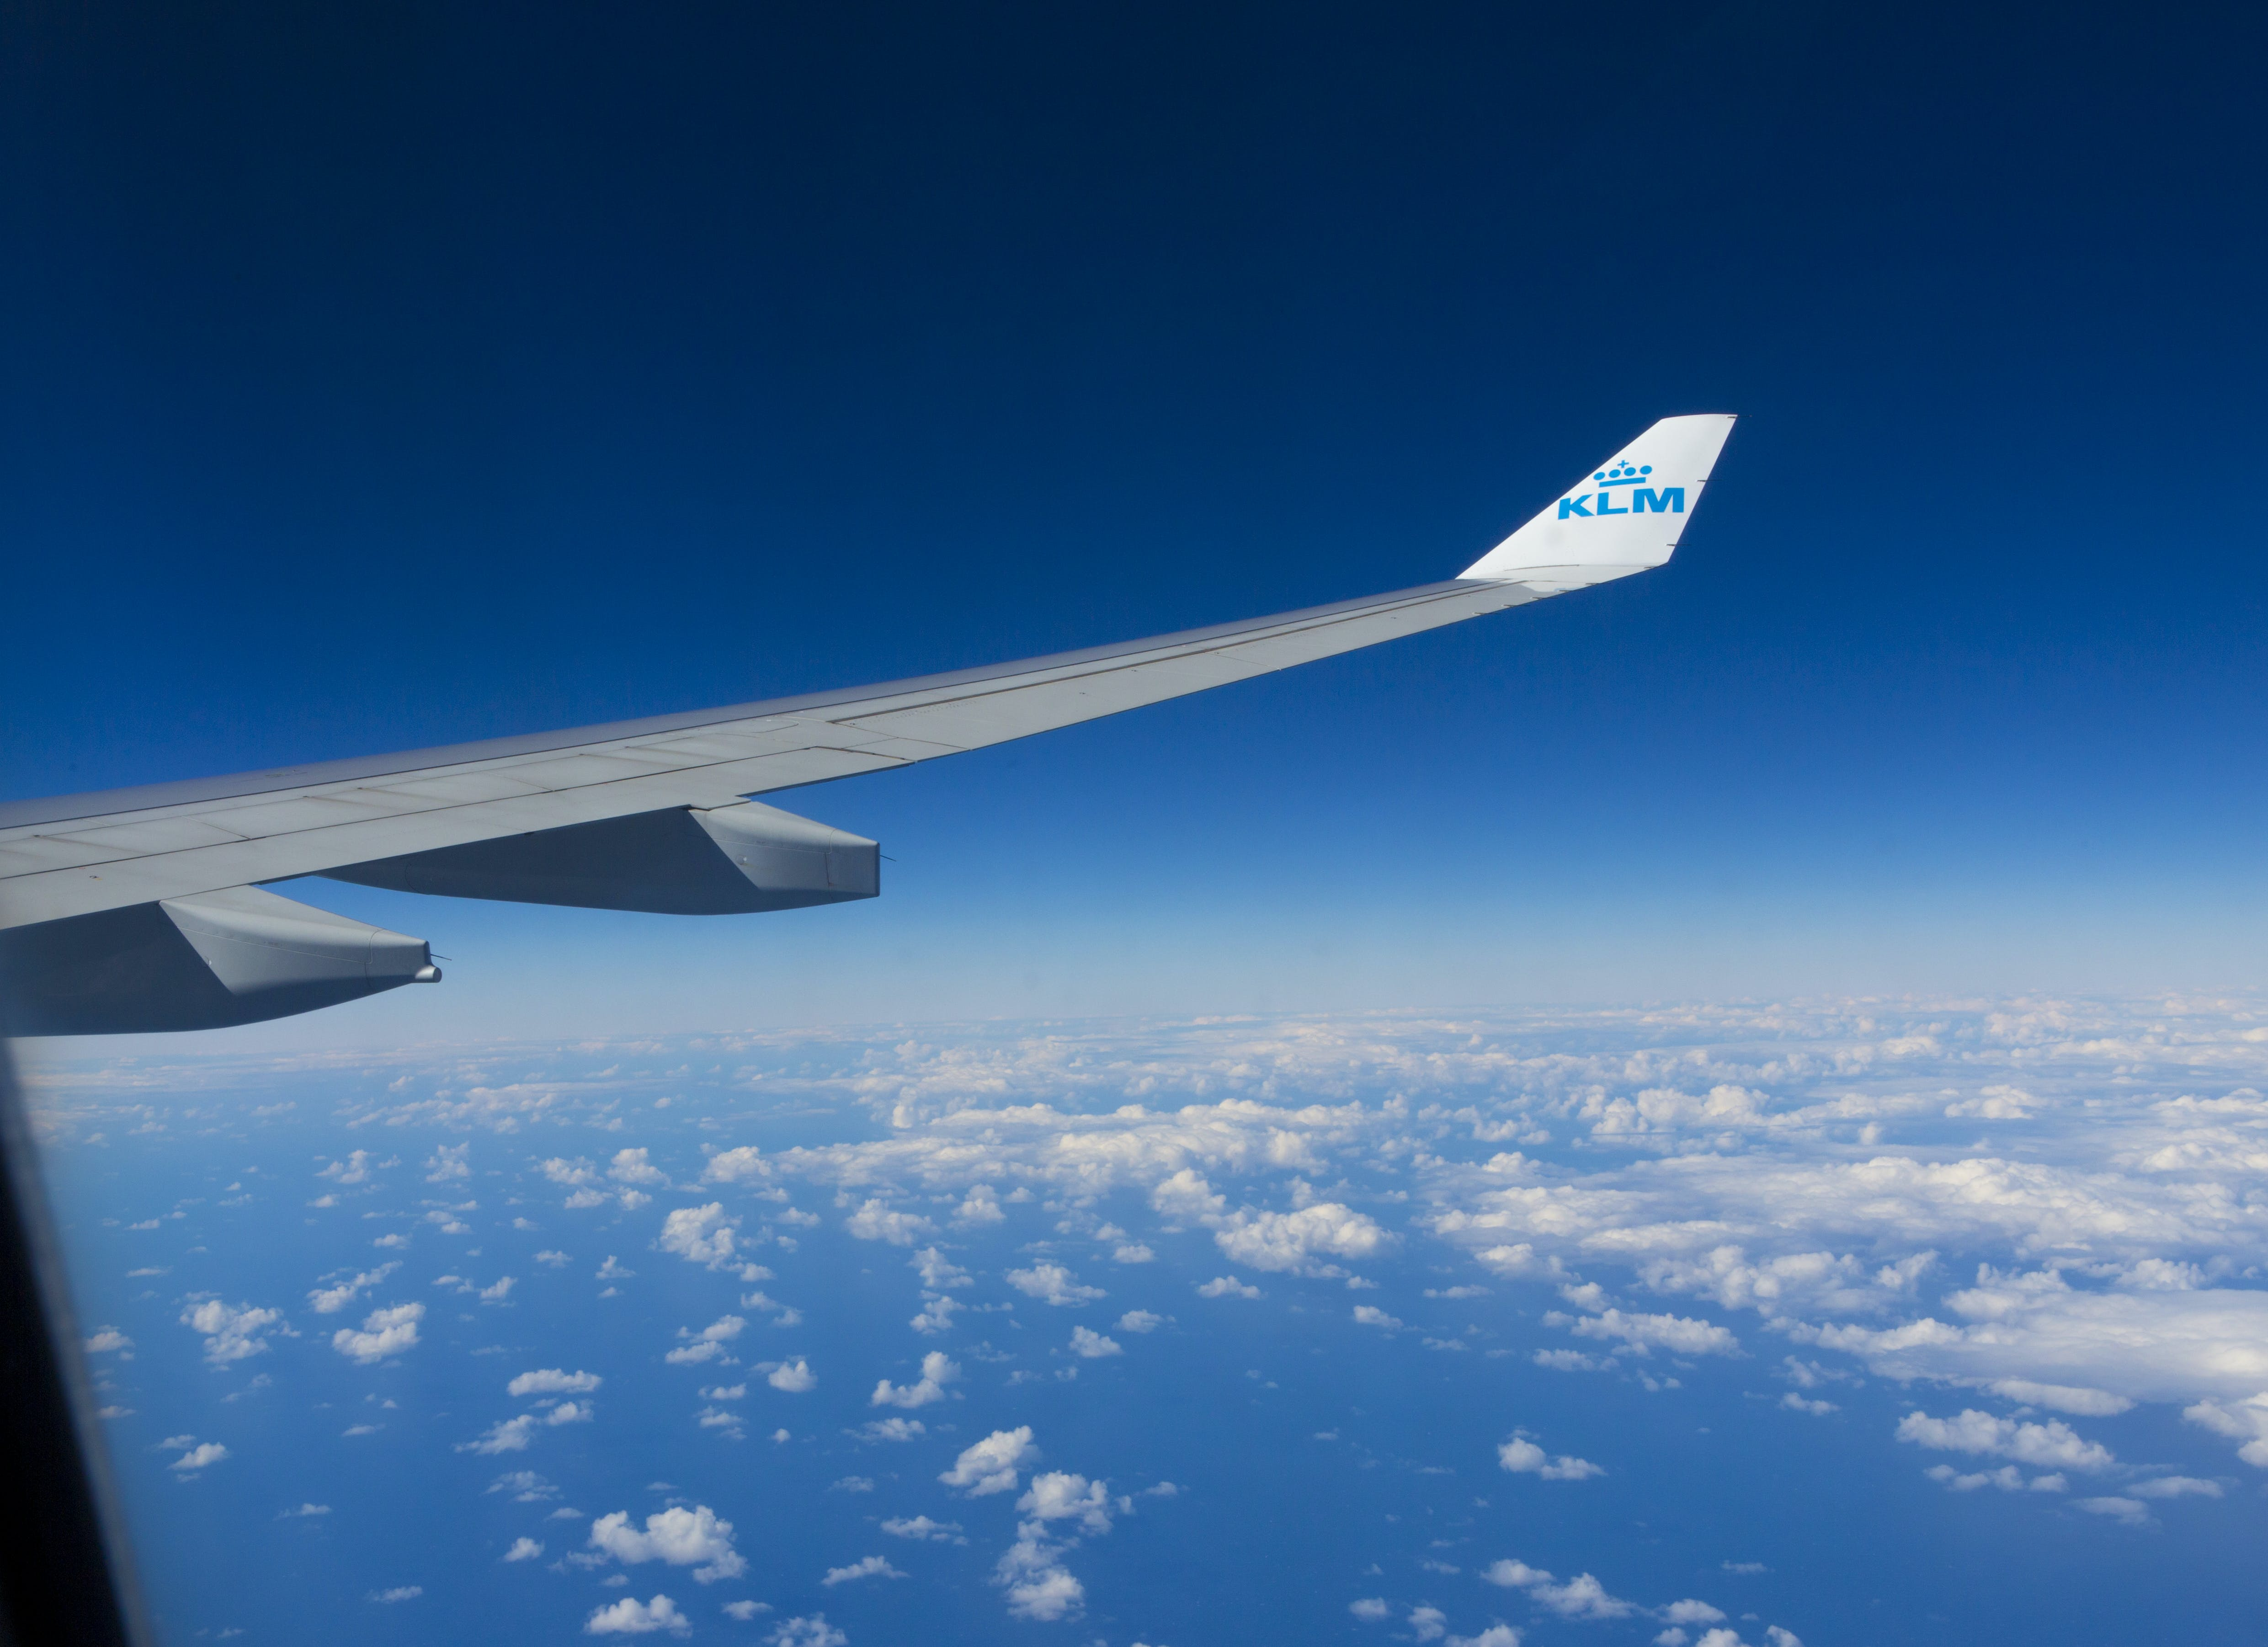 Free stock photo of aircraft wing, klm